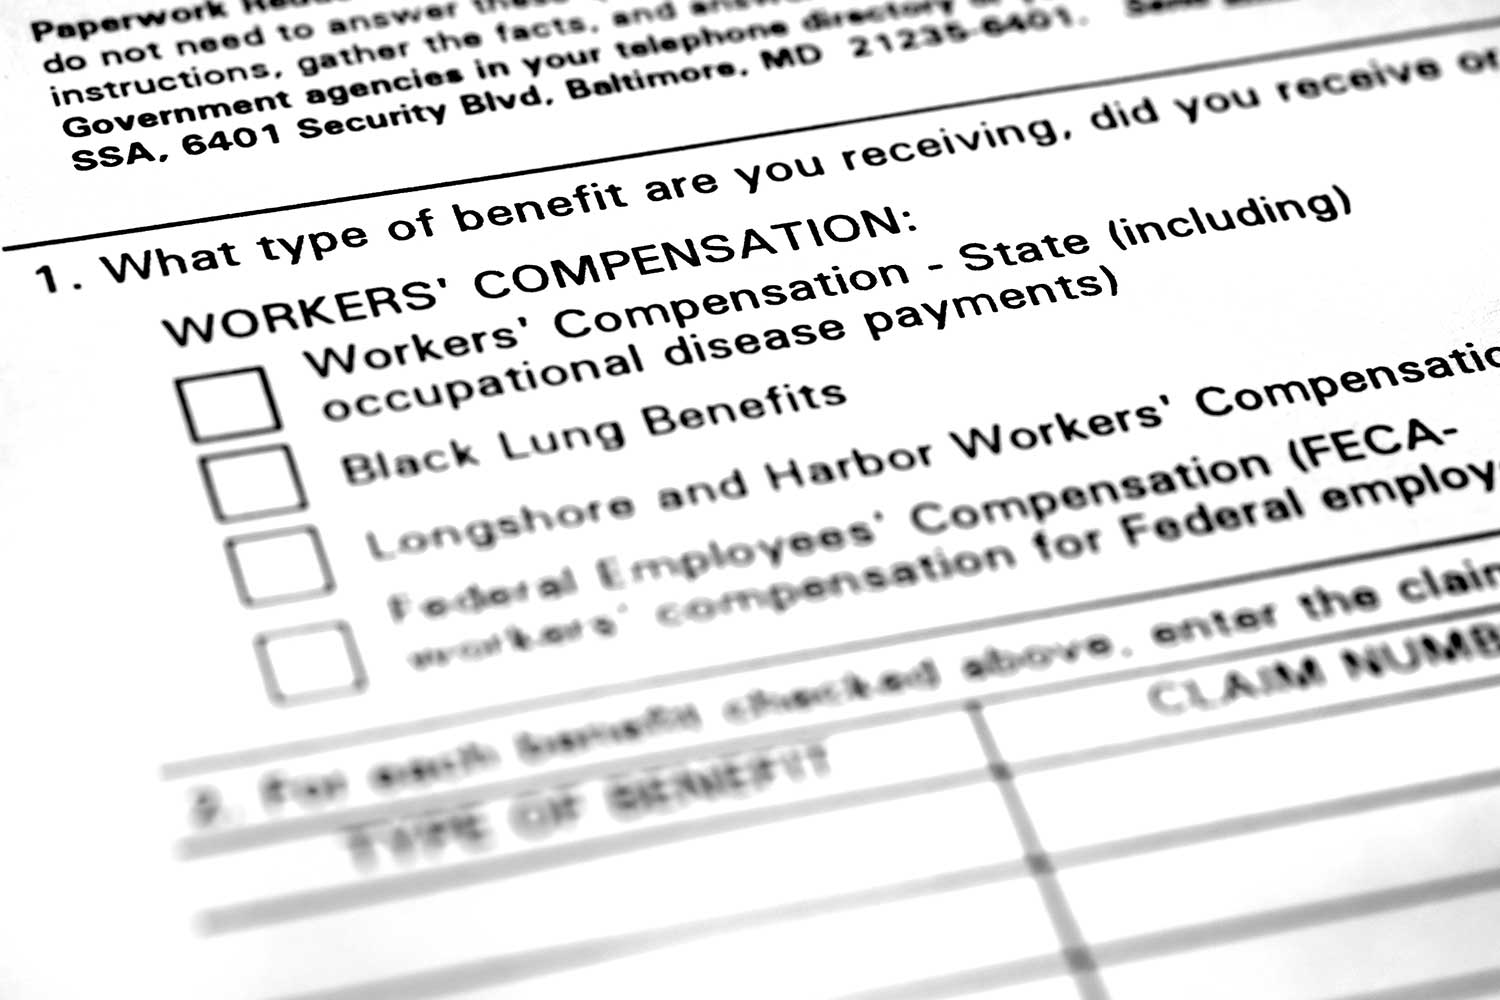 What If My Employer Doesn't Have Workers Comp Insurance?